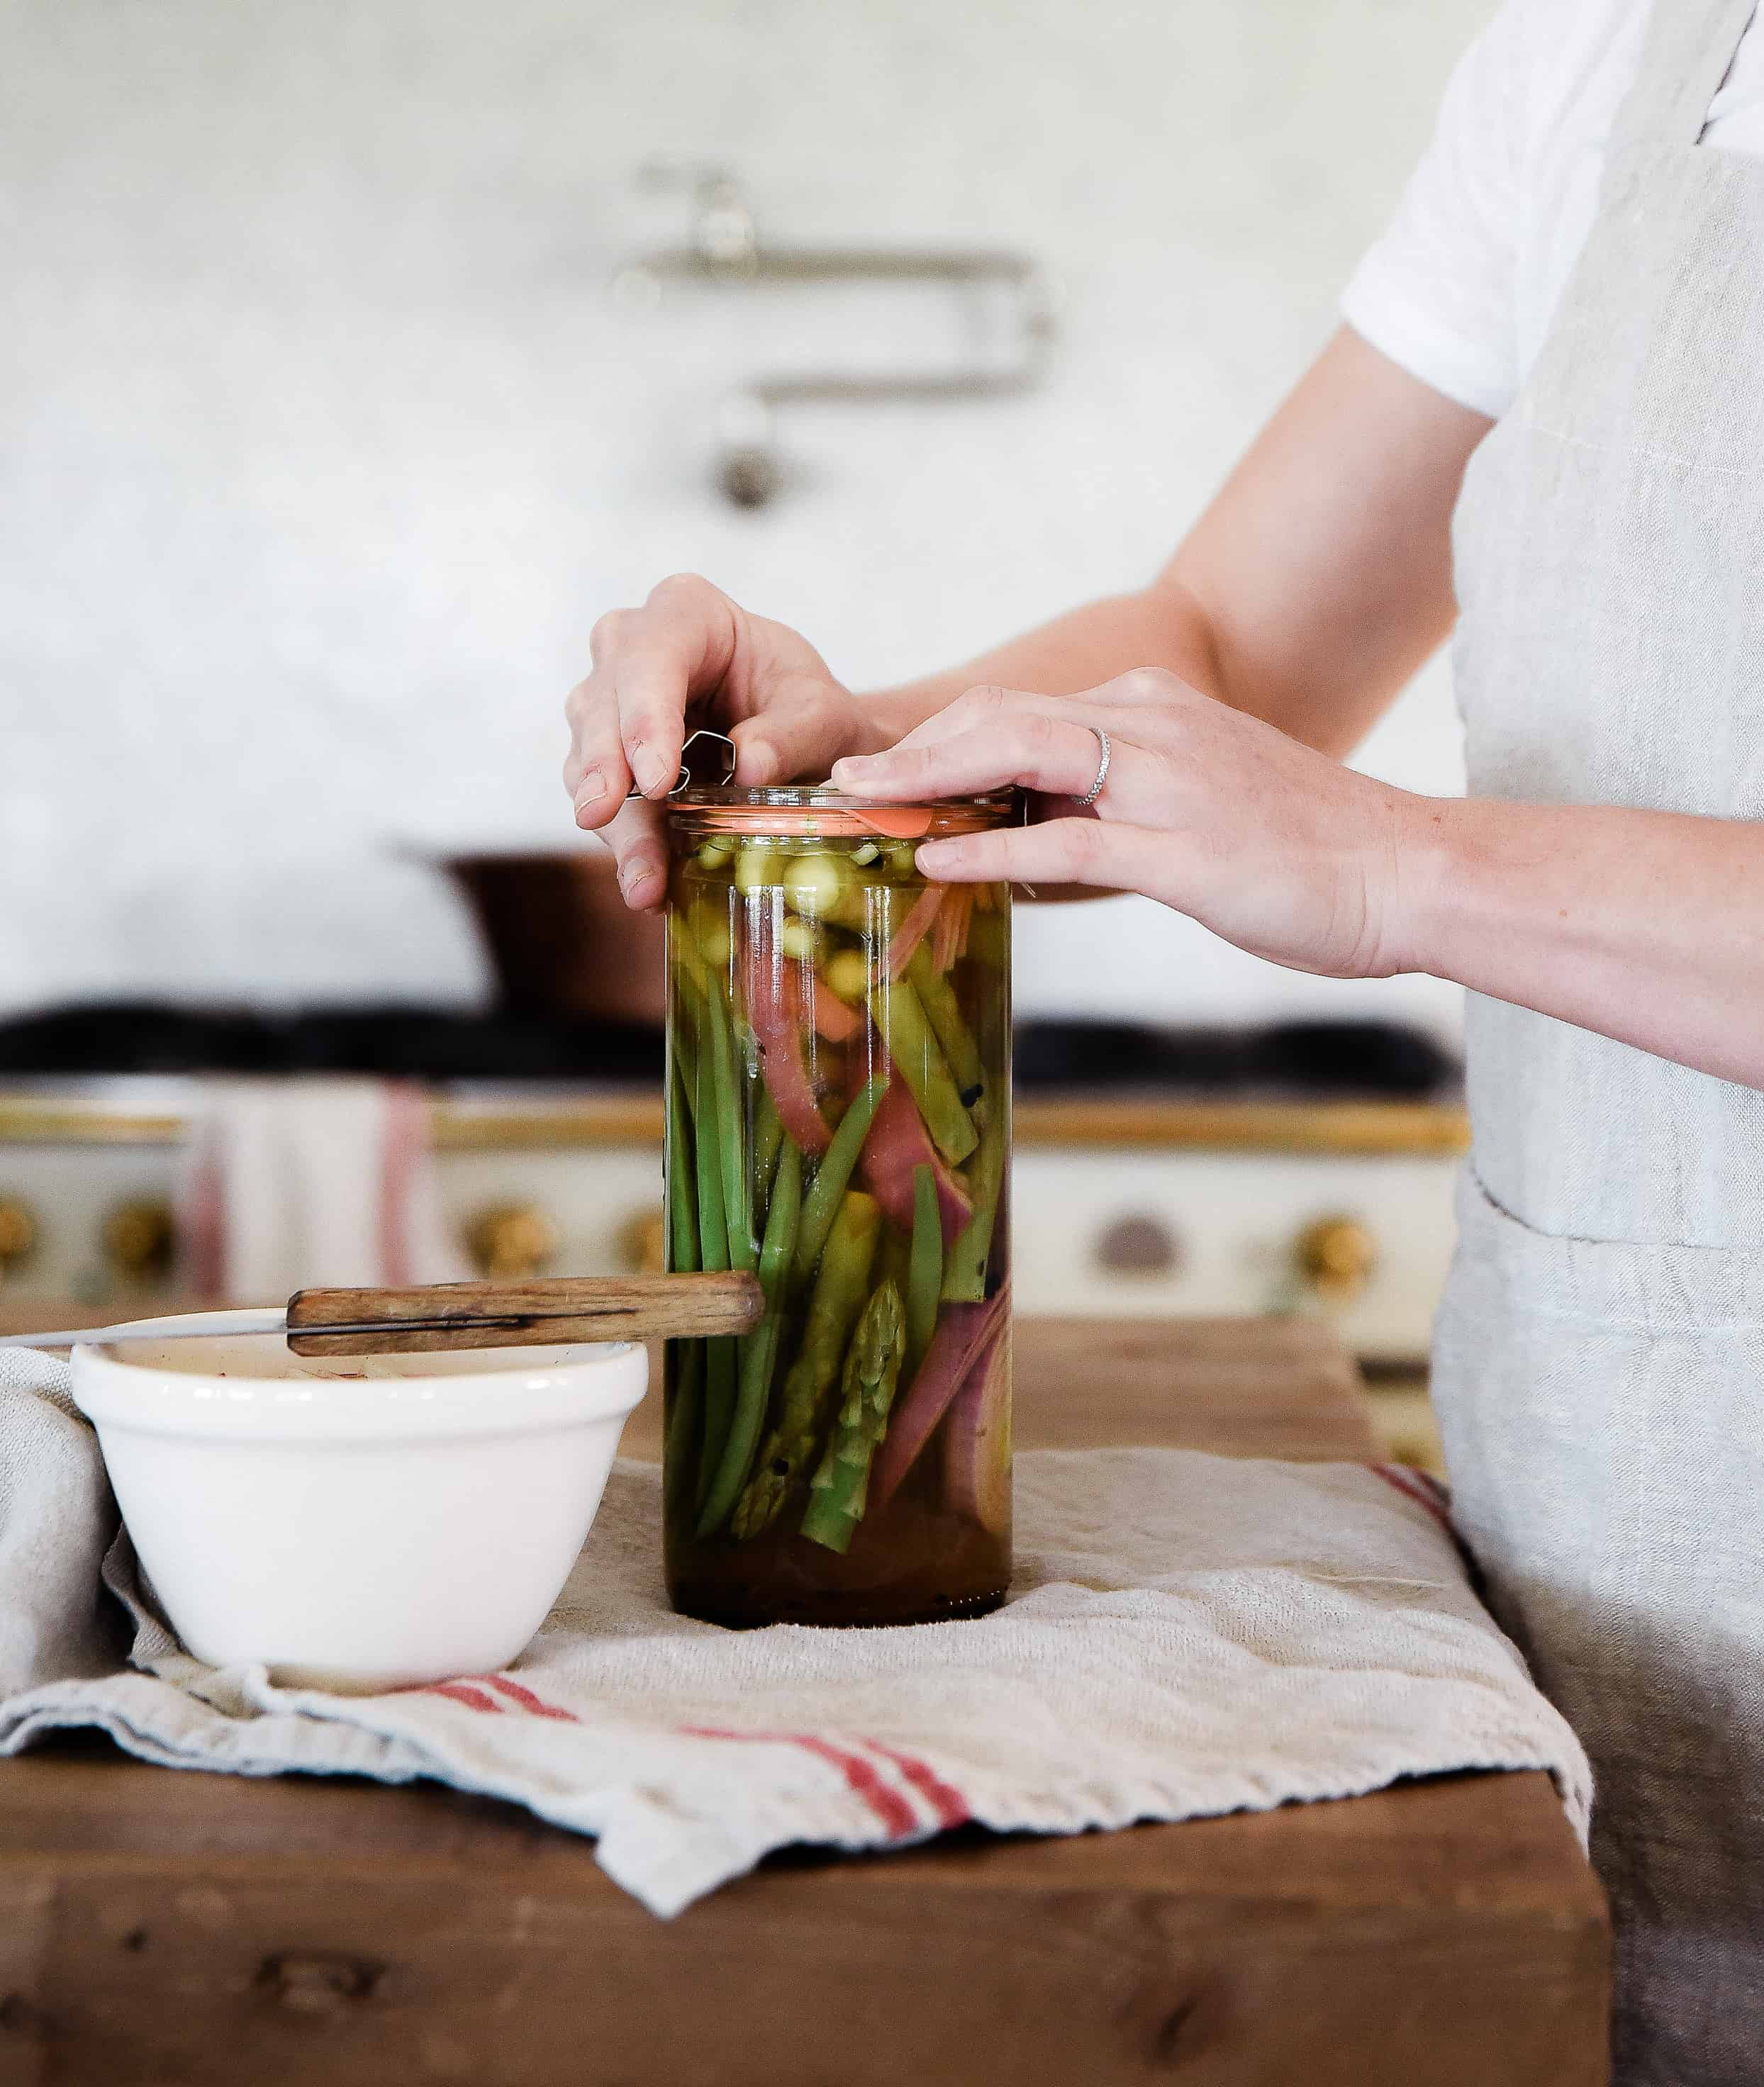 Learn how to make pickled veggies! Refrigerator pickles are the perfect way to enjoy your summer garden harvest!